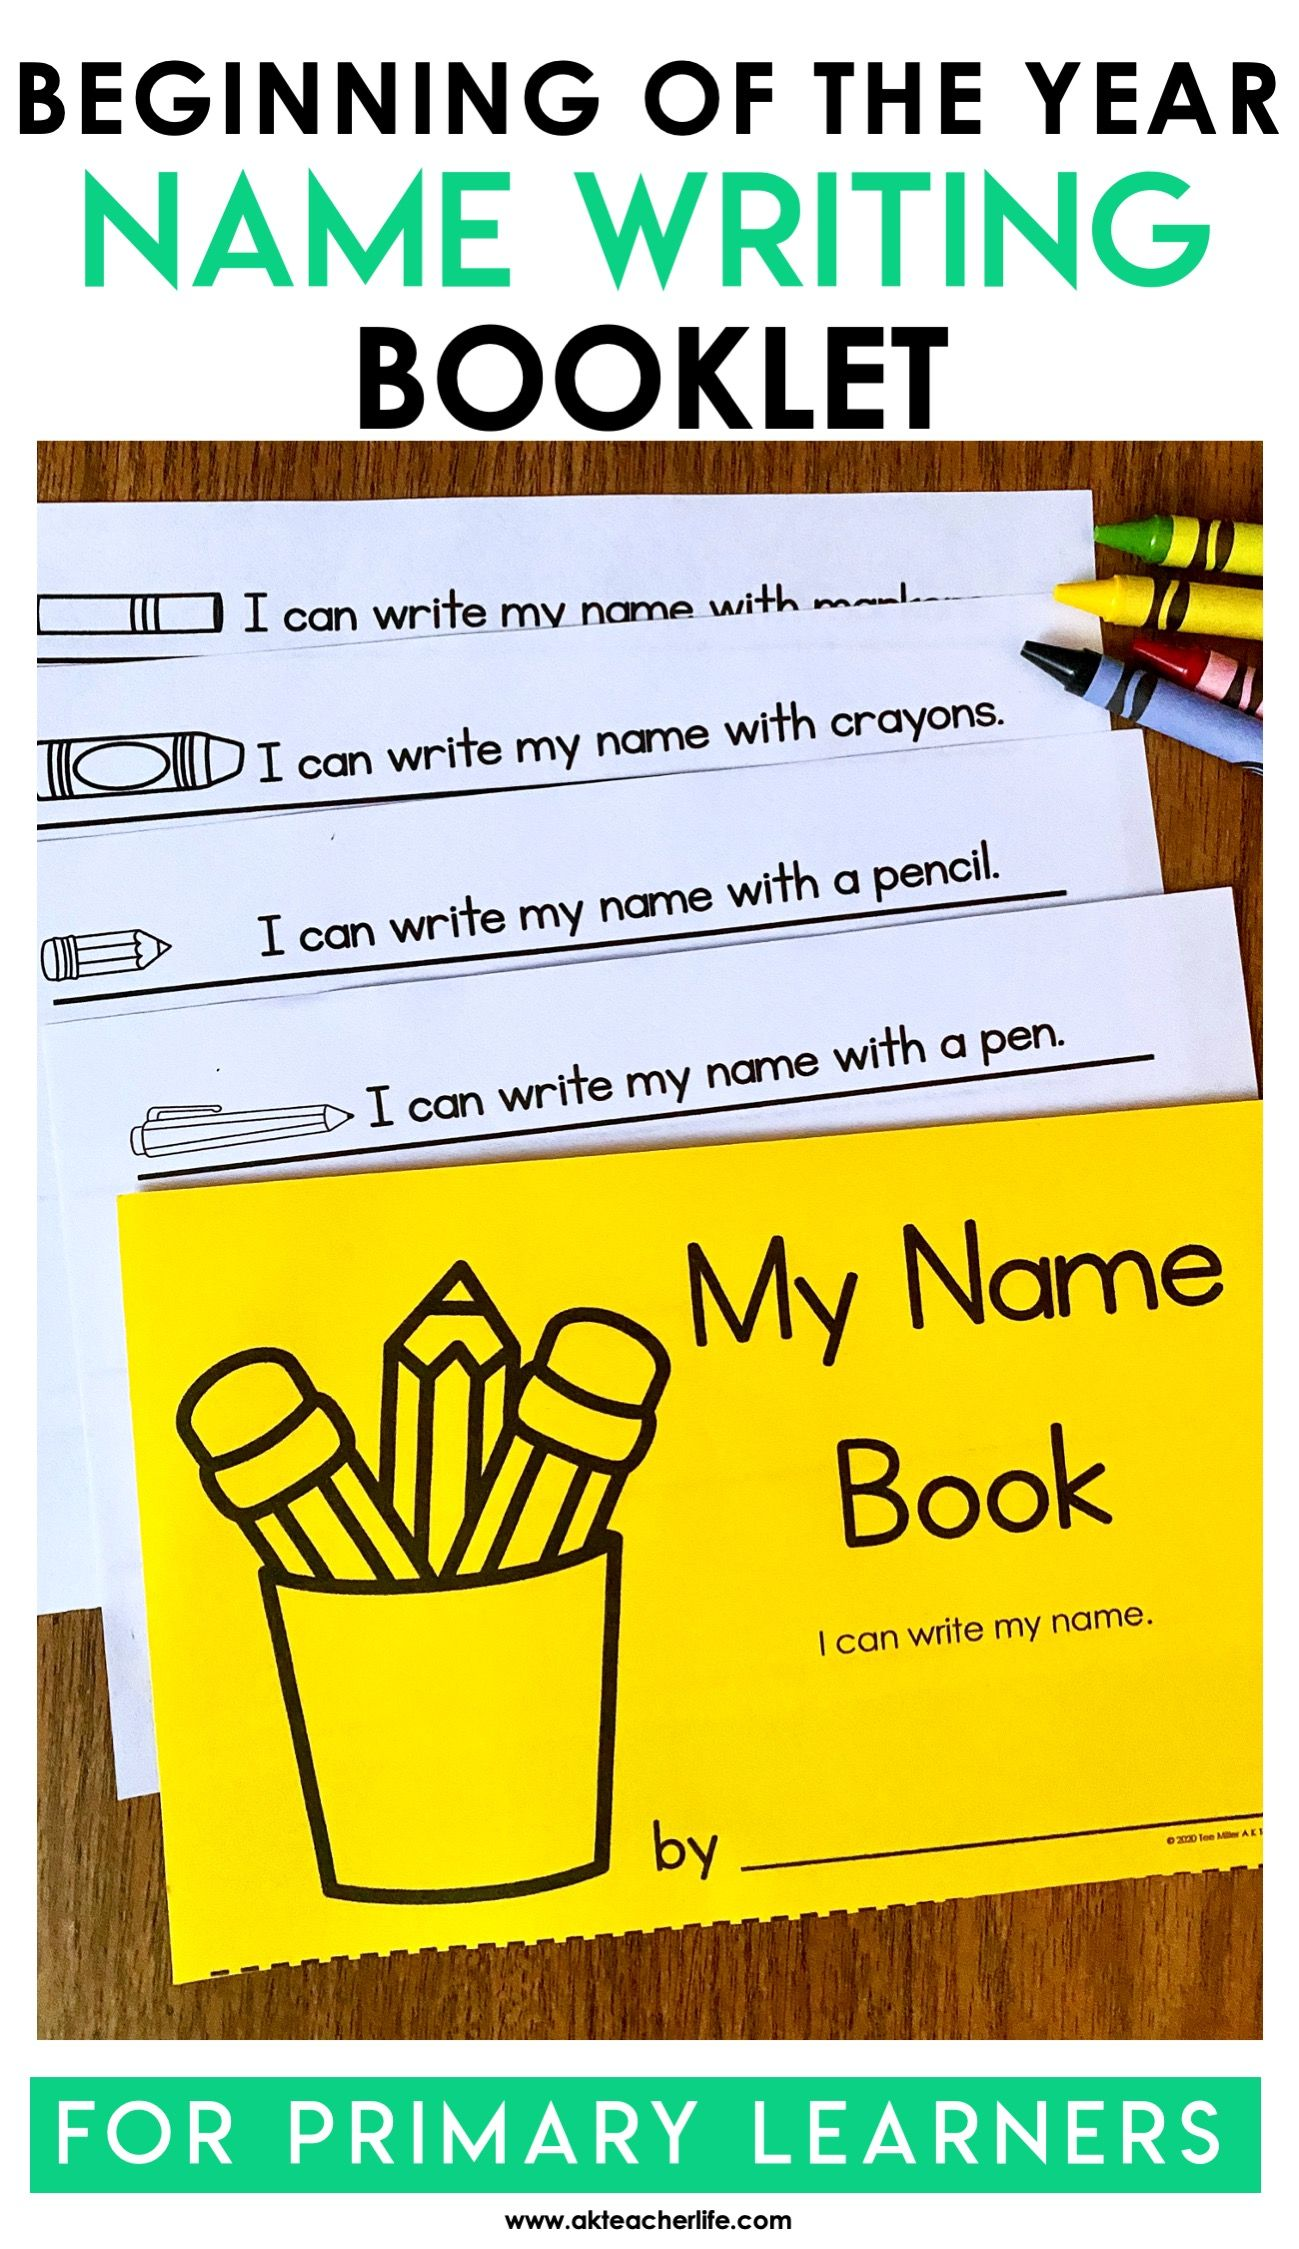 Name Writing Booklet Freebie Students Practice Writing Their Names Using Different Writing Tools Writing Activities For Preschoolers Writing Practice Preschool Name Writing Practice [ 2249 x 1299 Pixel ]